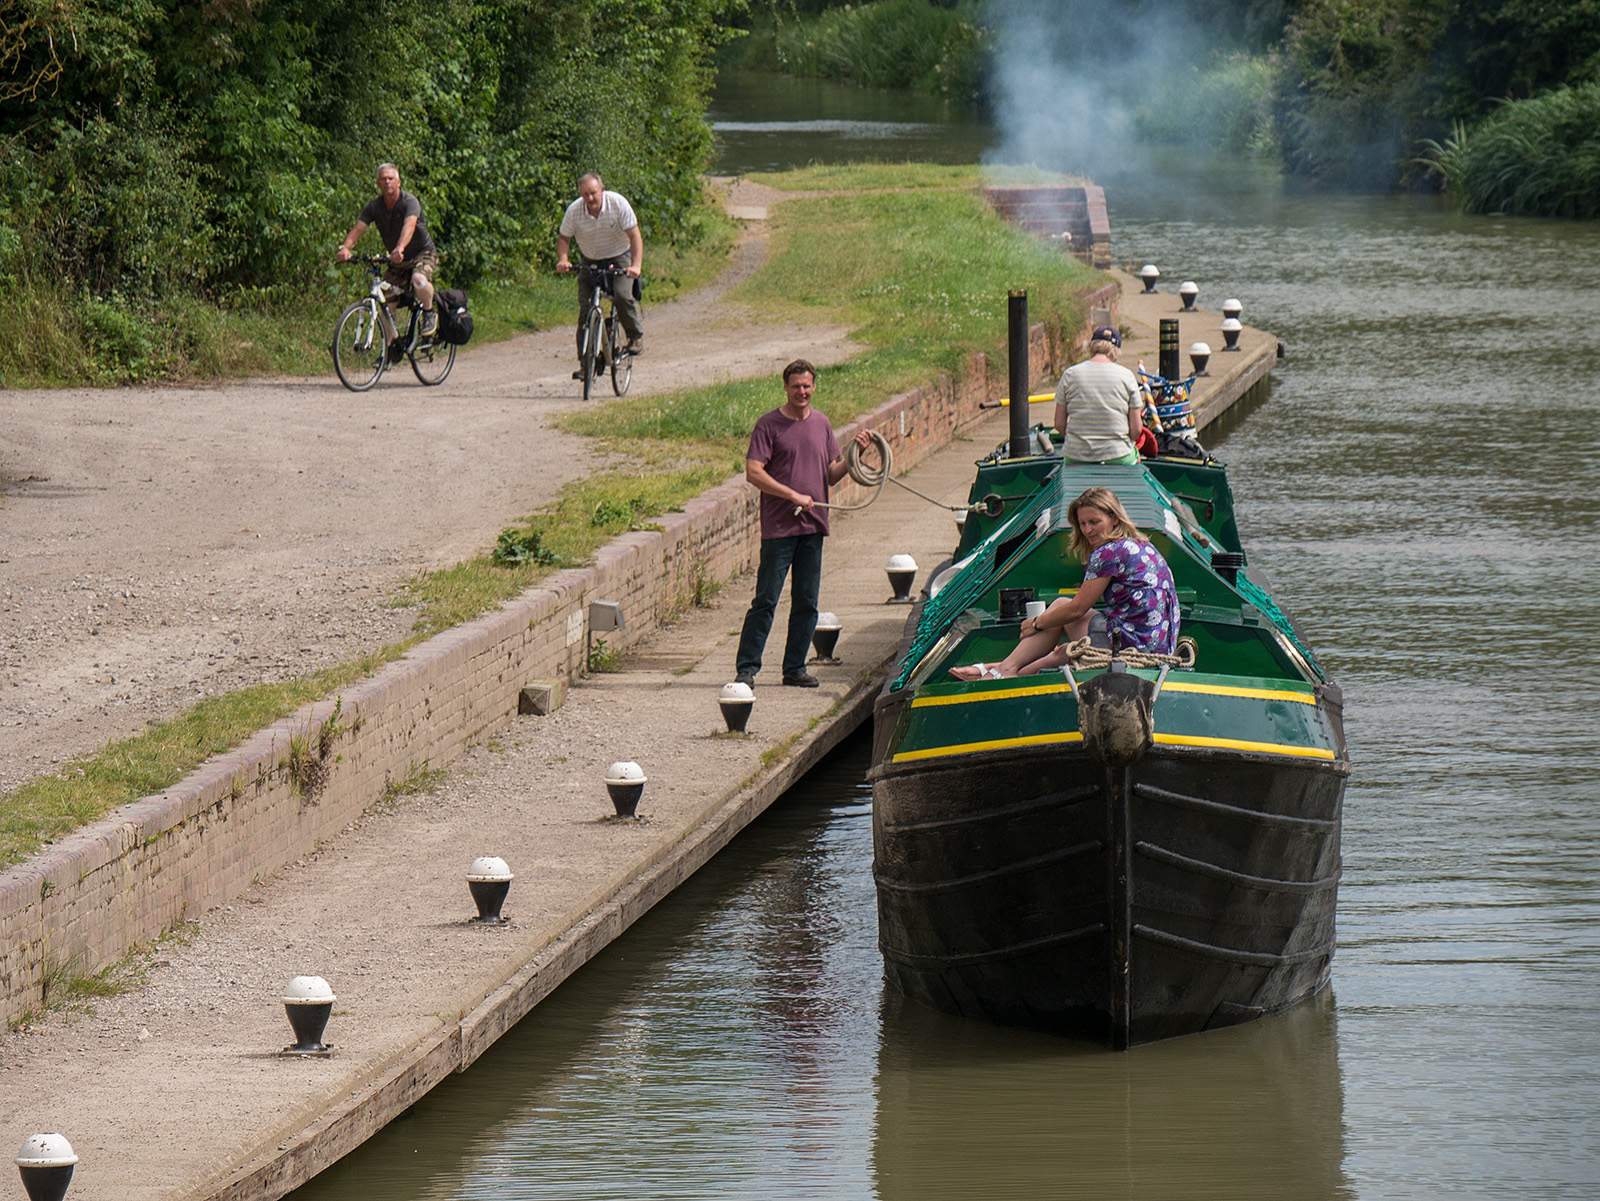 Mooring up as the lock is cycled